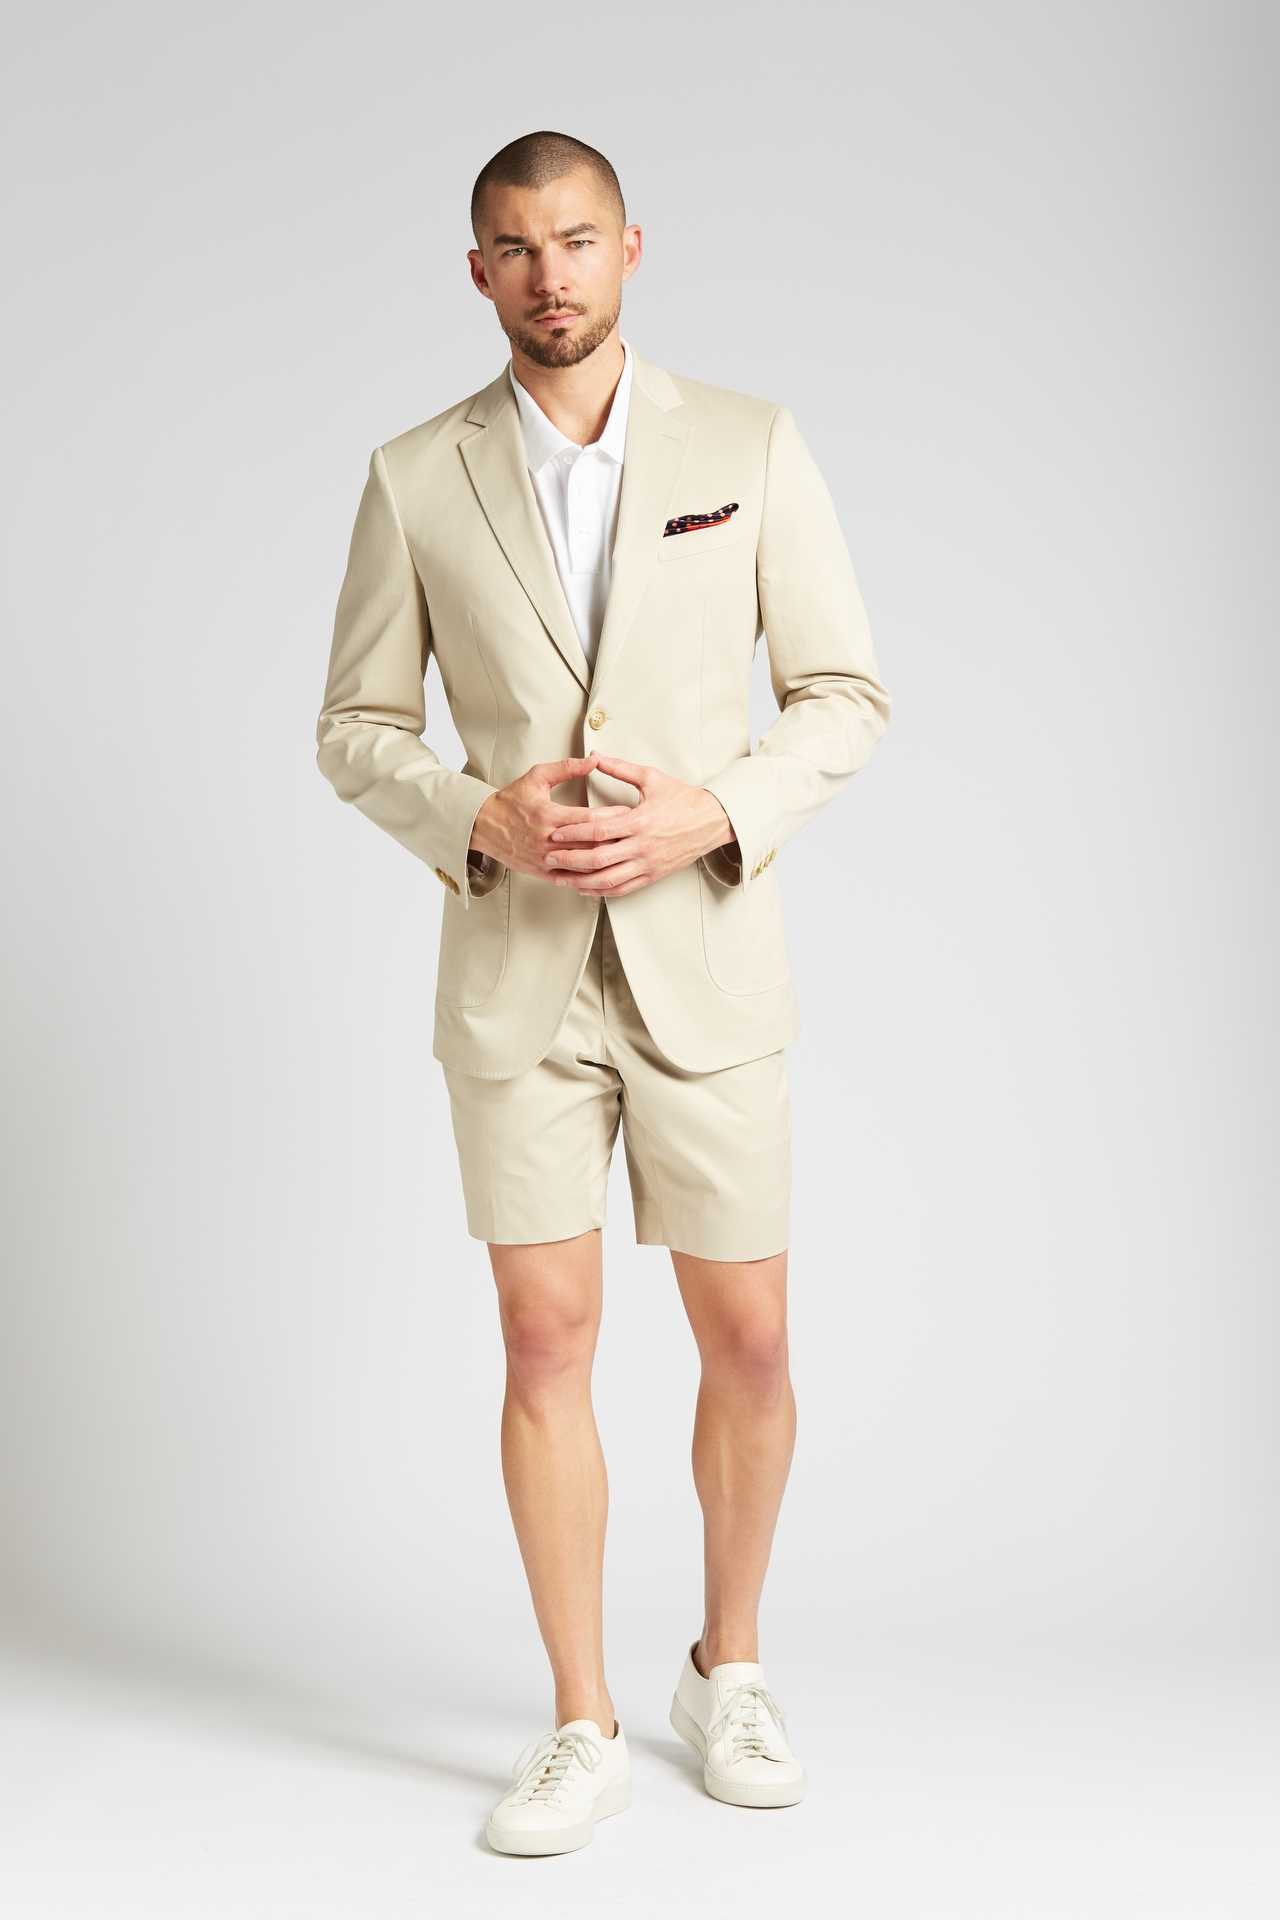 latest style of 2019 detailed pictures official shop Slim-fit Cotton Chino 2-Piece Shorts Suit in Khaki